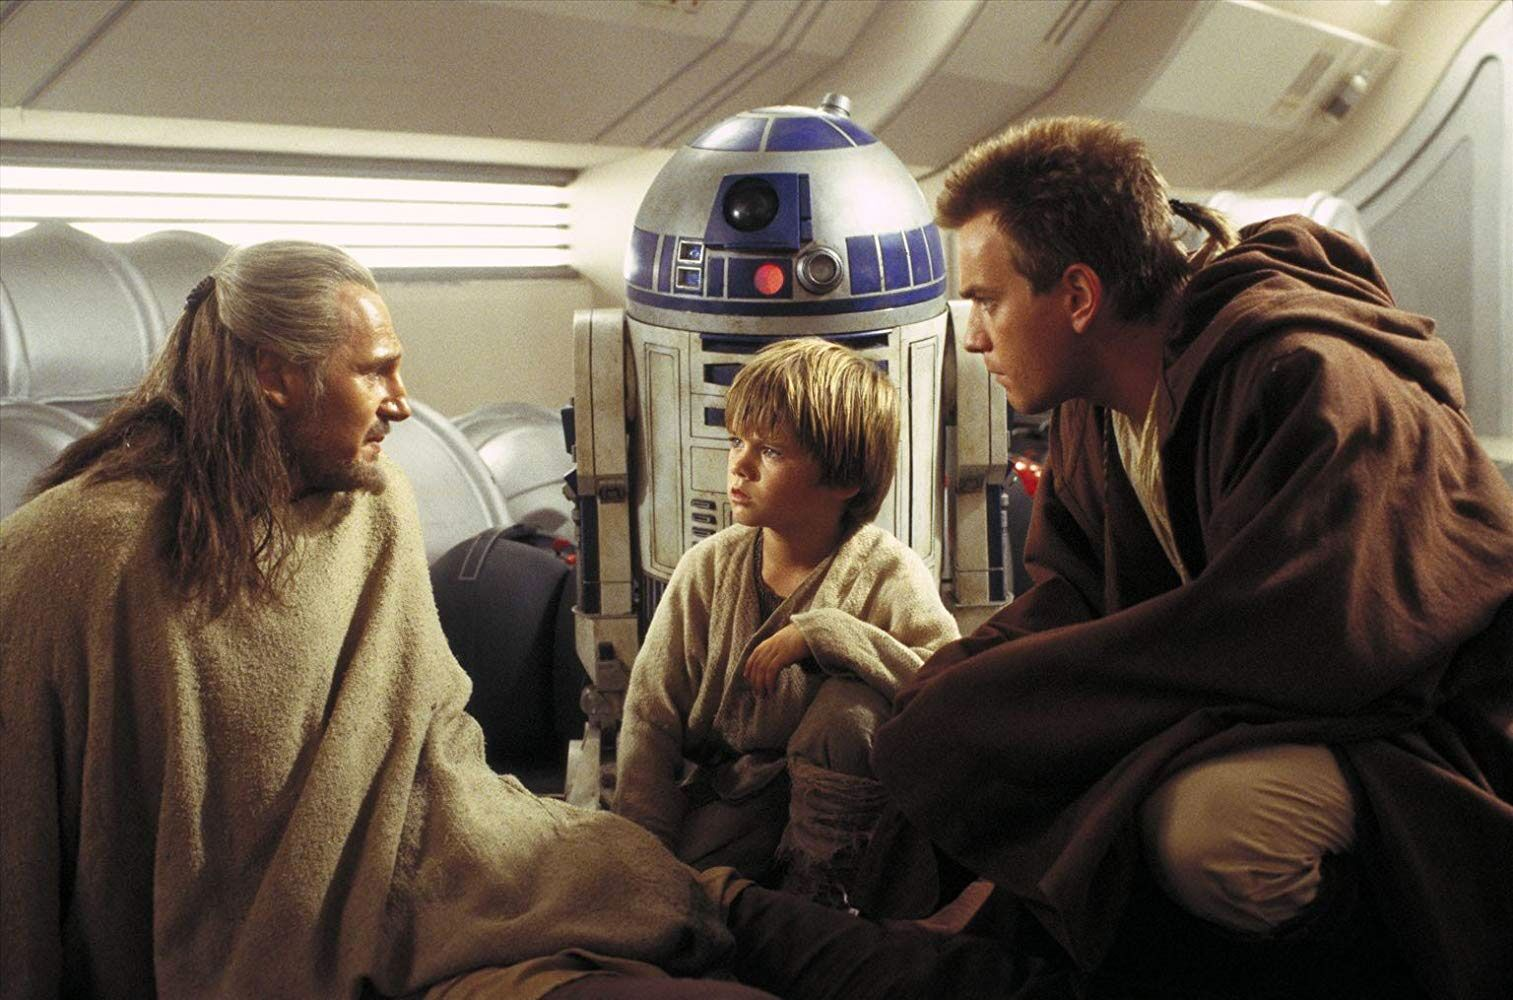 4 things we want the Obi-Wan Disney+ series to explore